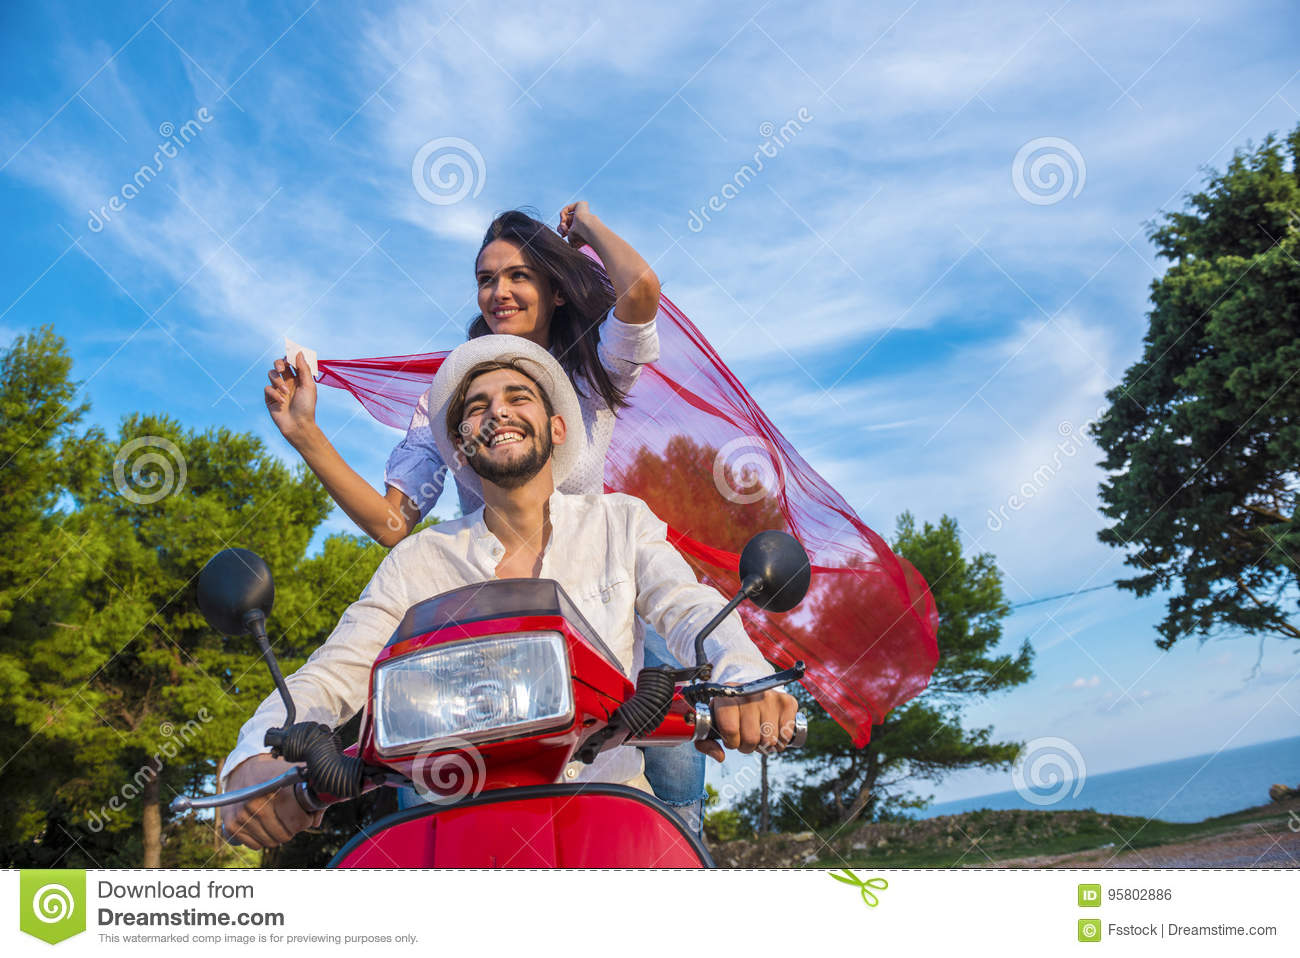 Happy free freedom couple driving scooter excited on summer holidays vacation.